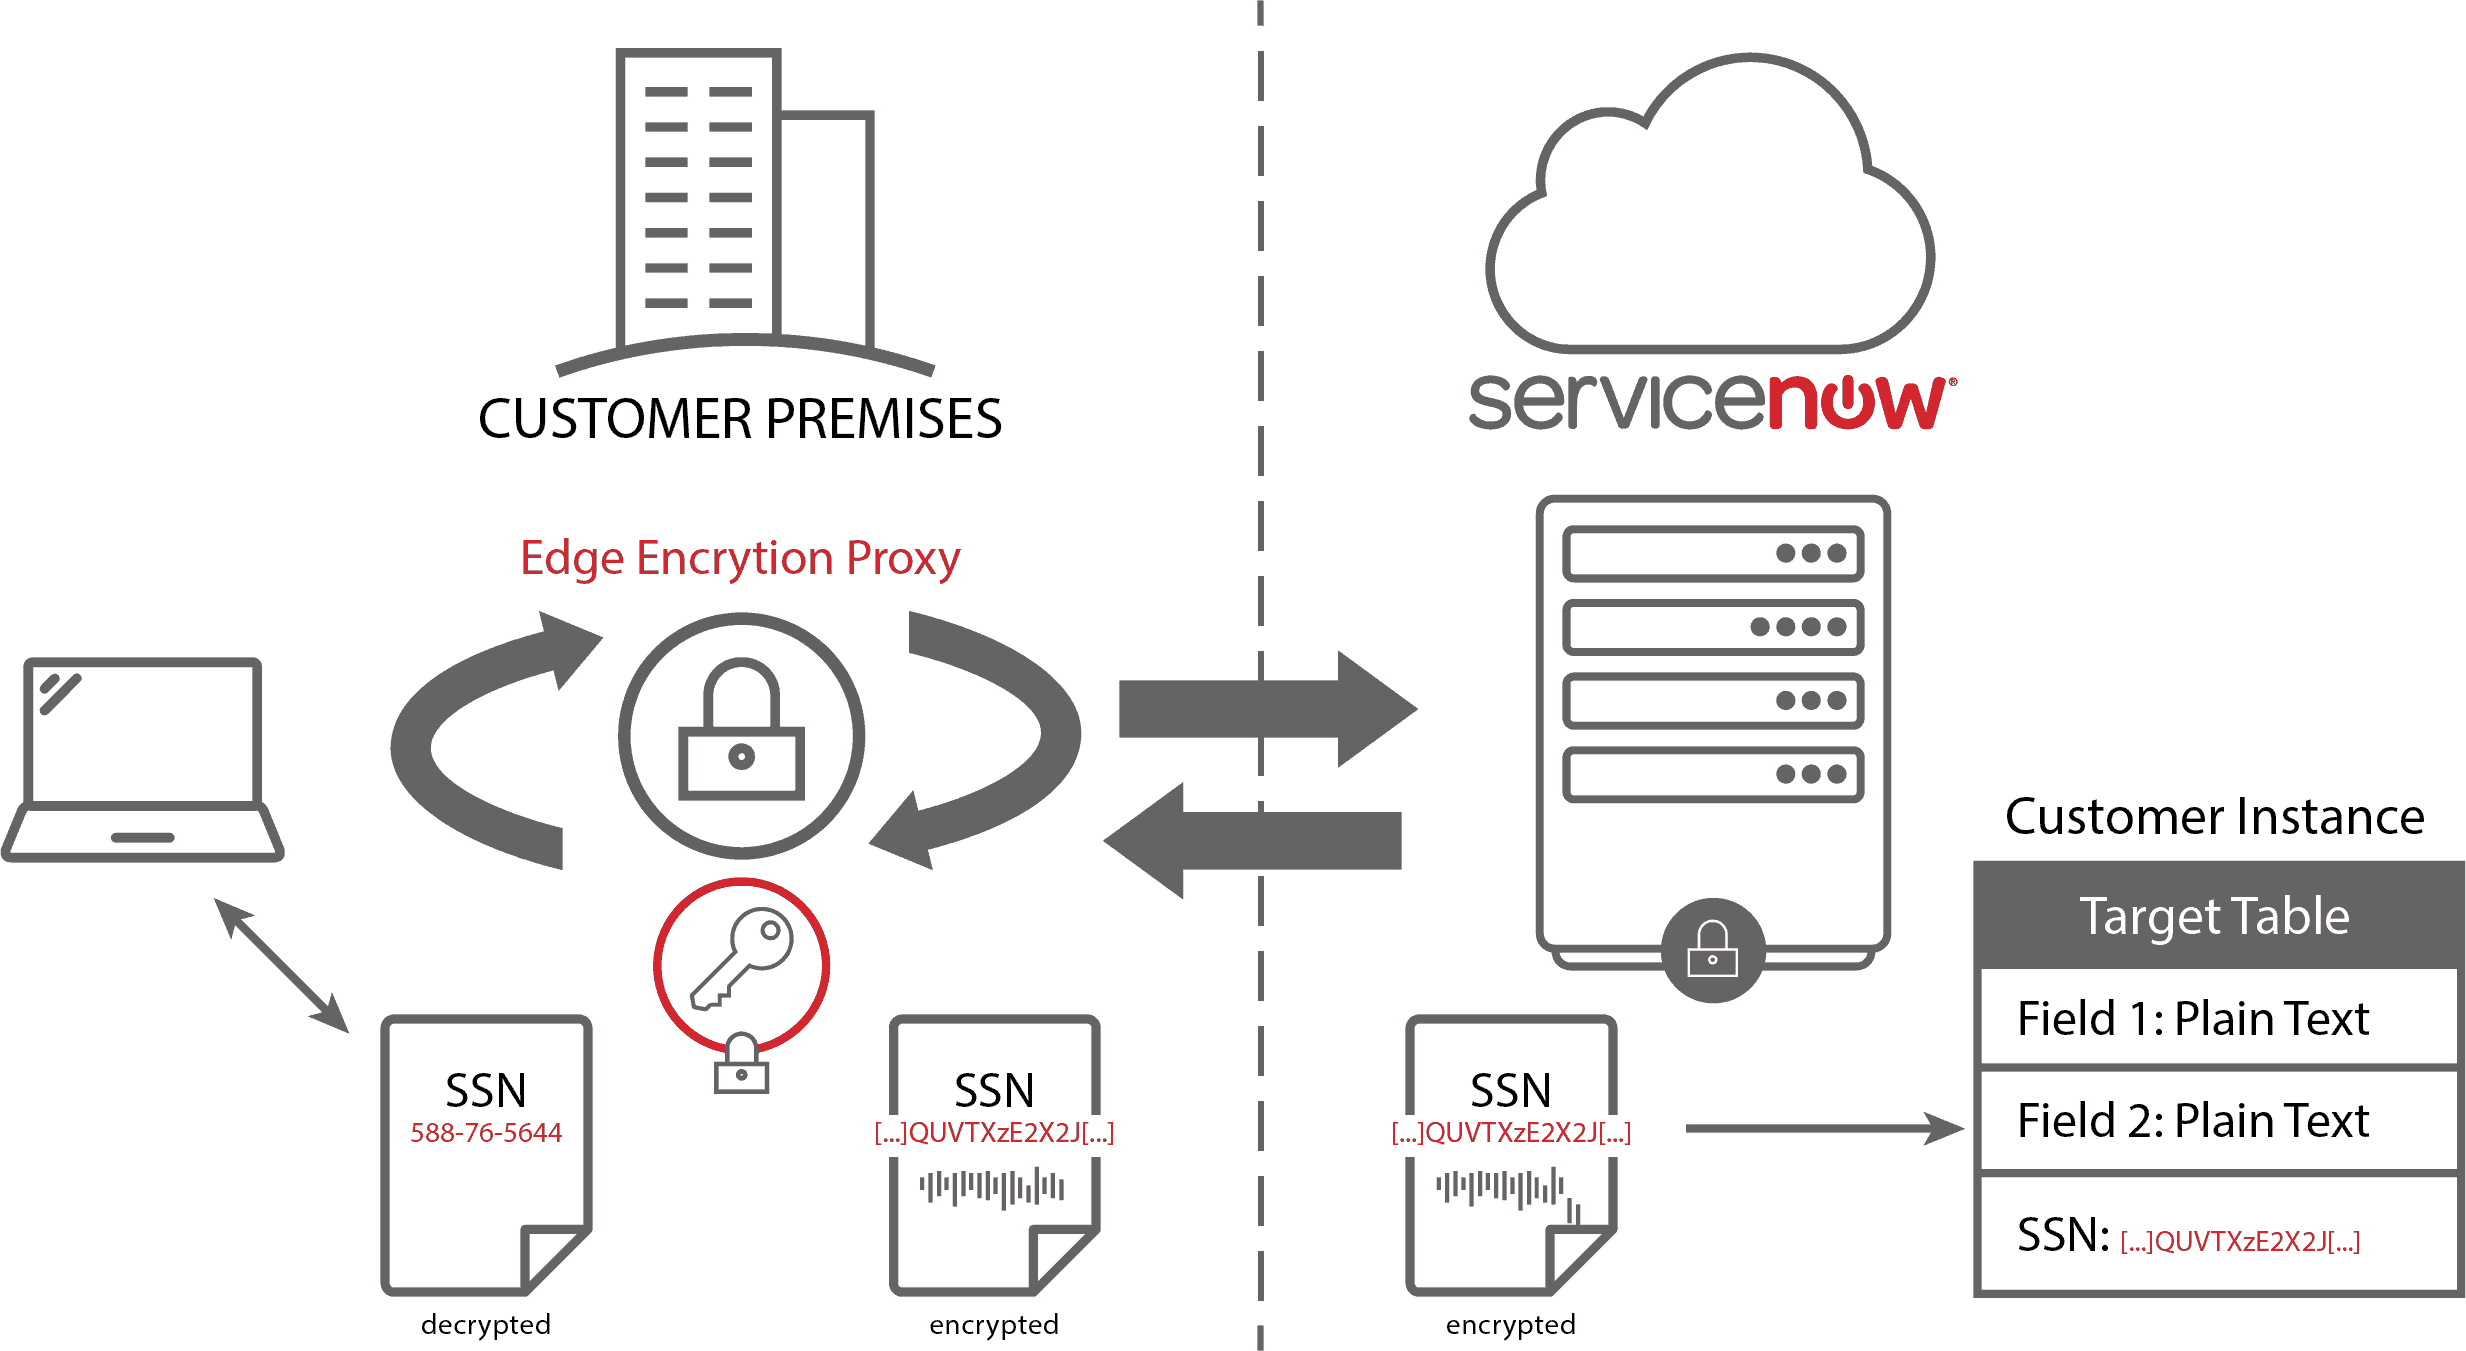 Considerations For Servicenow Edge Encryptionysis